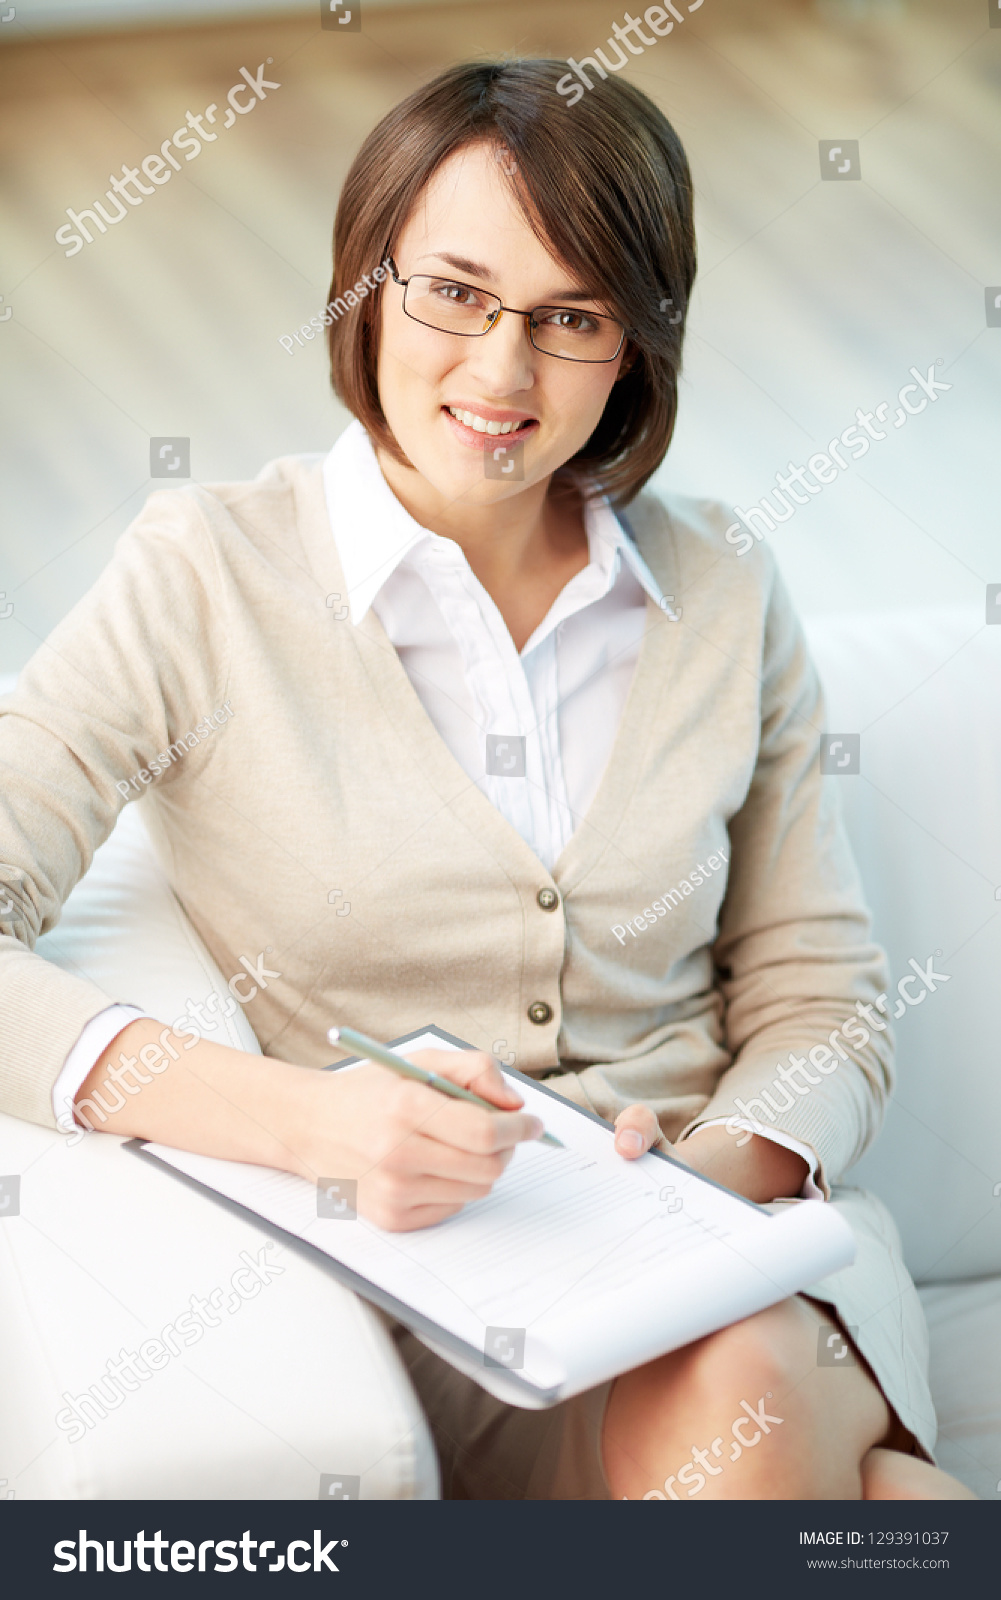 Vertical Portrait Of Pretty 14 Year Old Girl Stock Image: Vertical Portrait Of A Successful Psychologist Or A